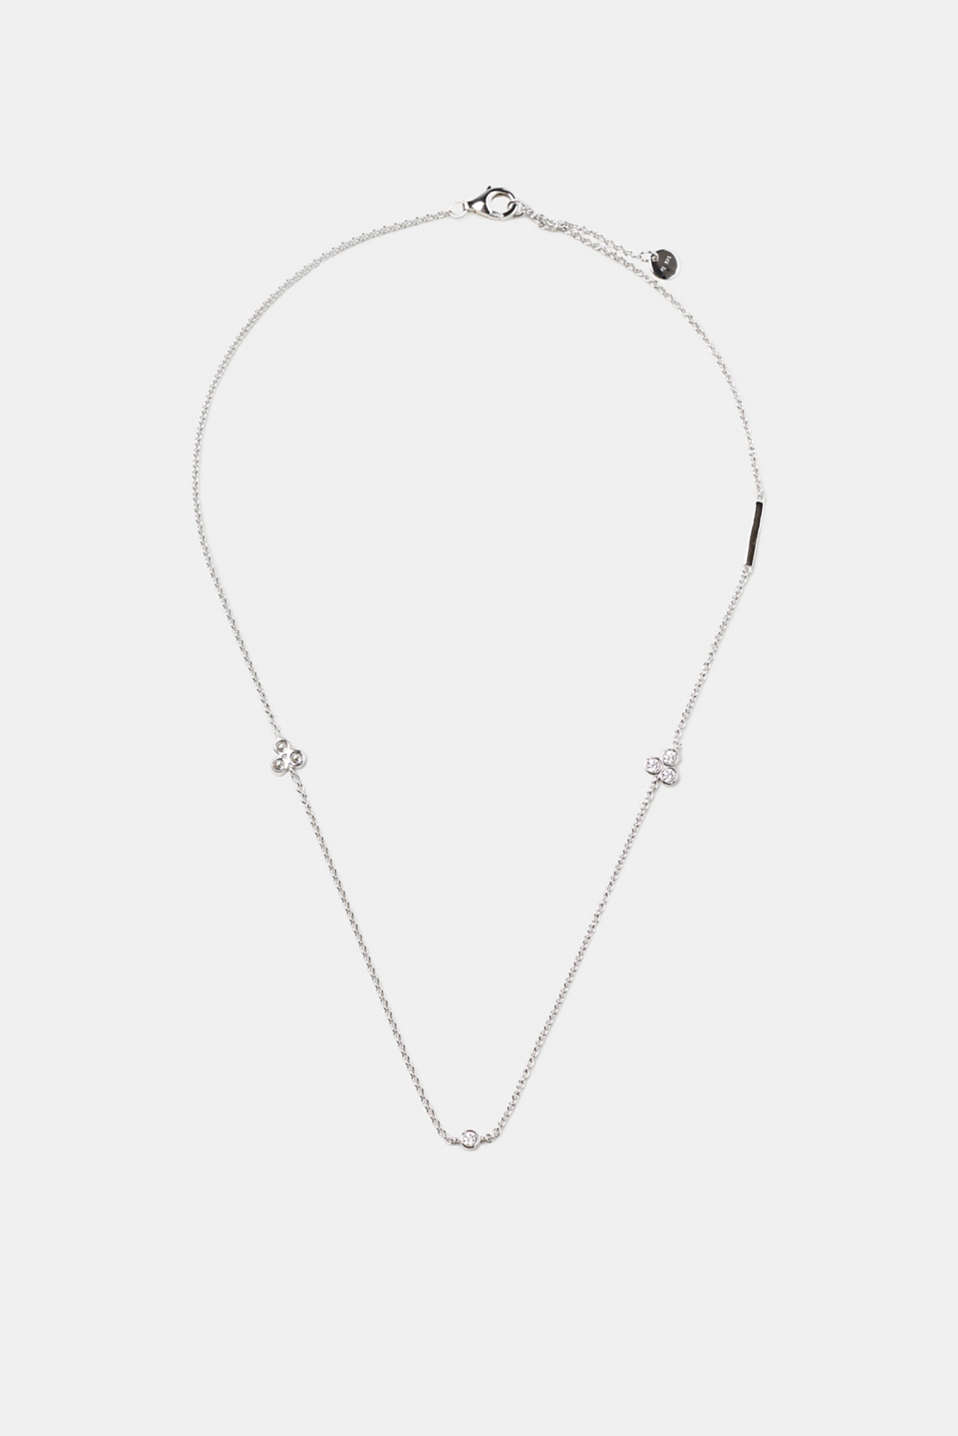 Esprit - Necklace with set zirconia stones, sterling silver